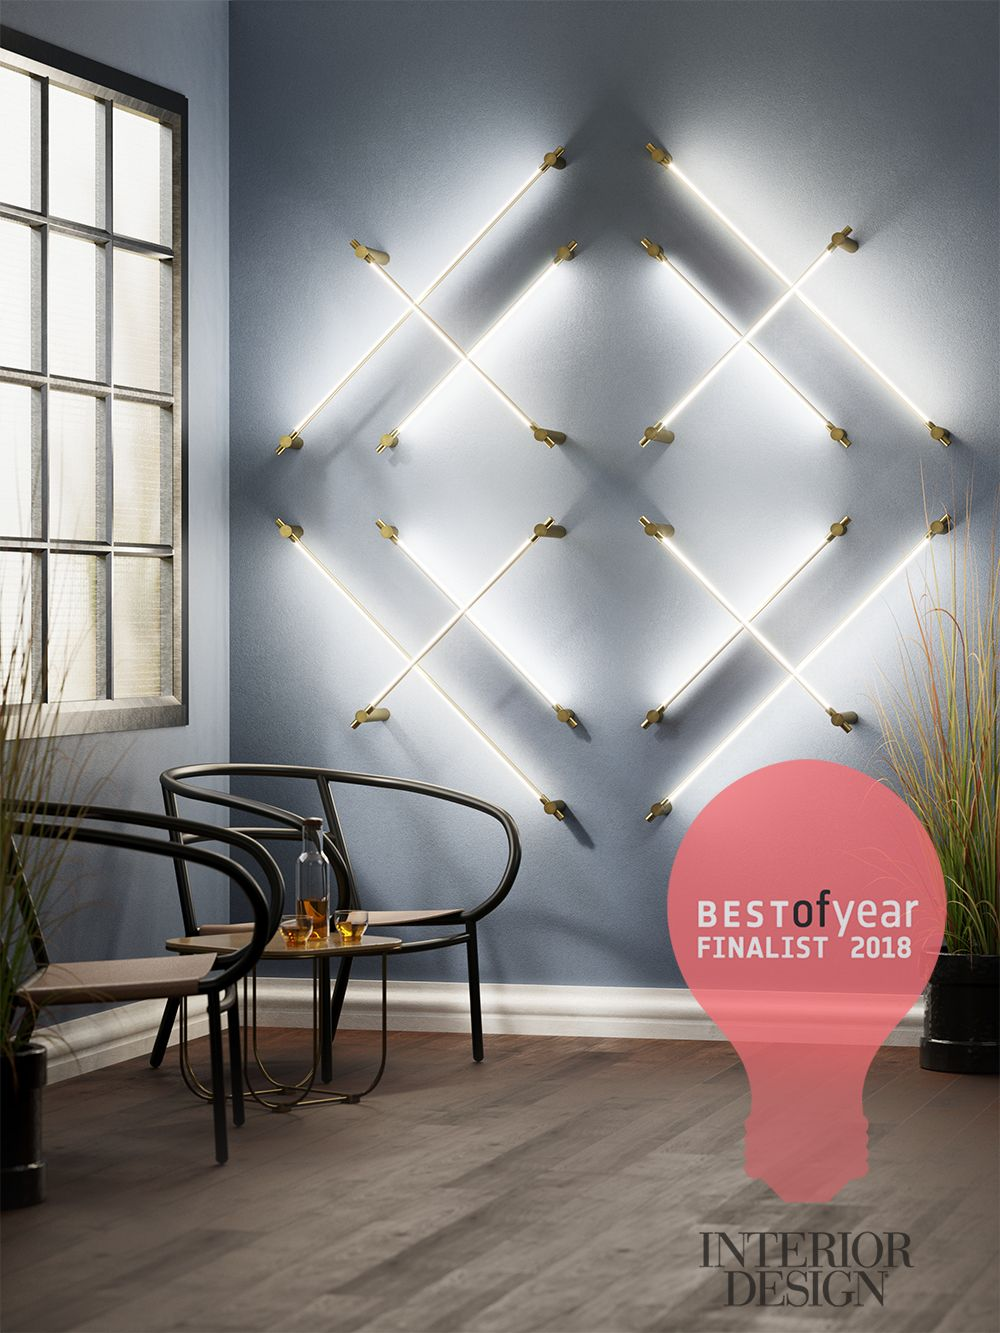 Best Of Year Awards 2018 Finalist Thin Diamond Sconce Award Display Interior Design Magazine Sconces